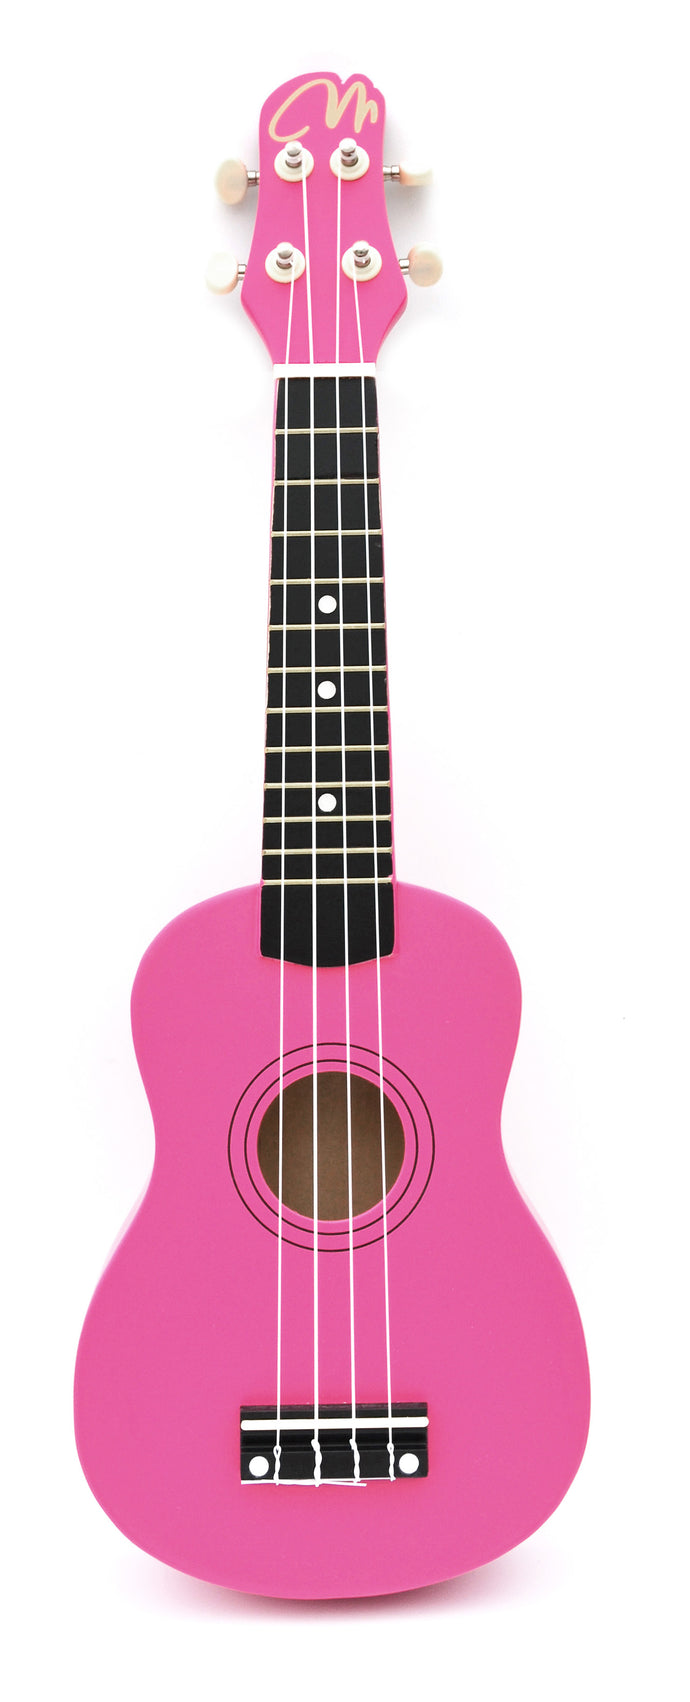 Magma Soprano Ukulele 21 inch Satin Pink Color with Bag (MK20RS)